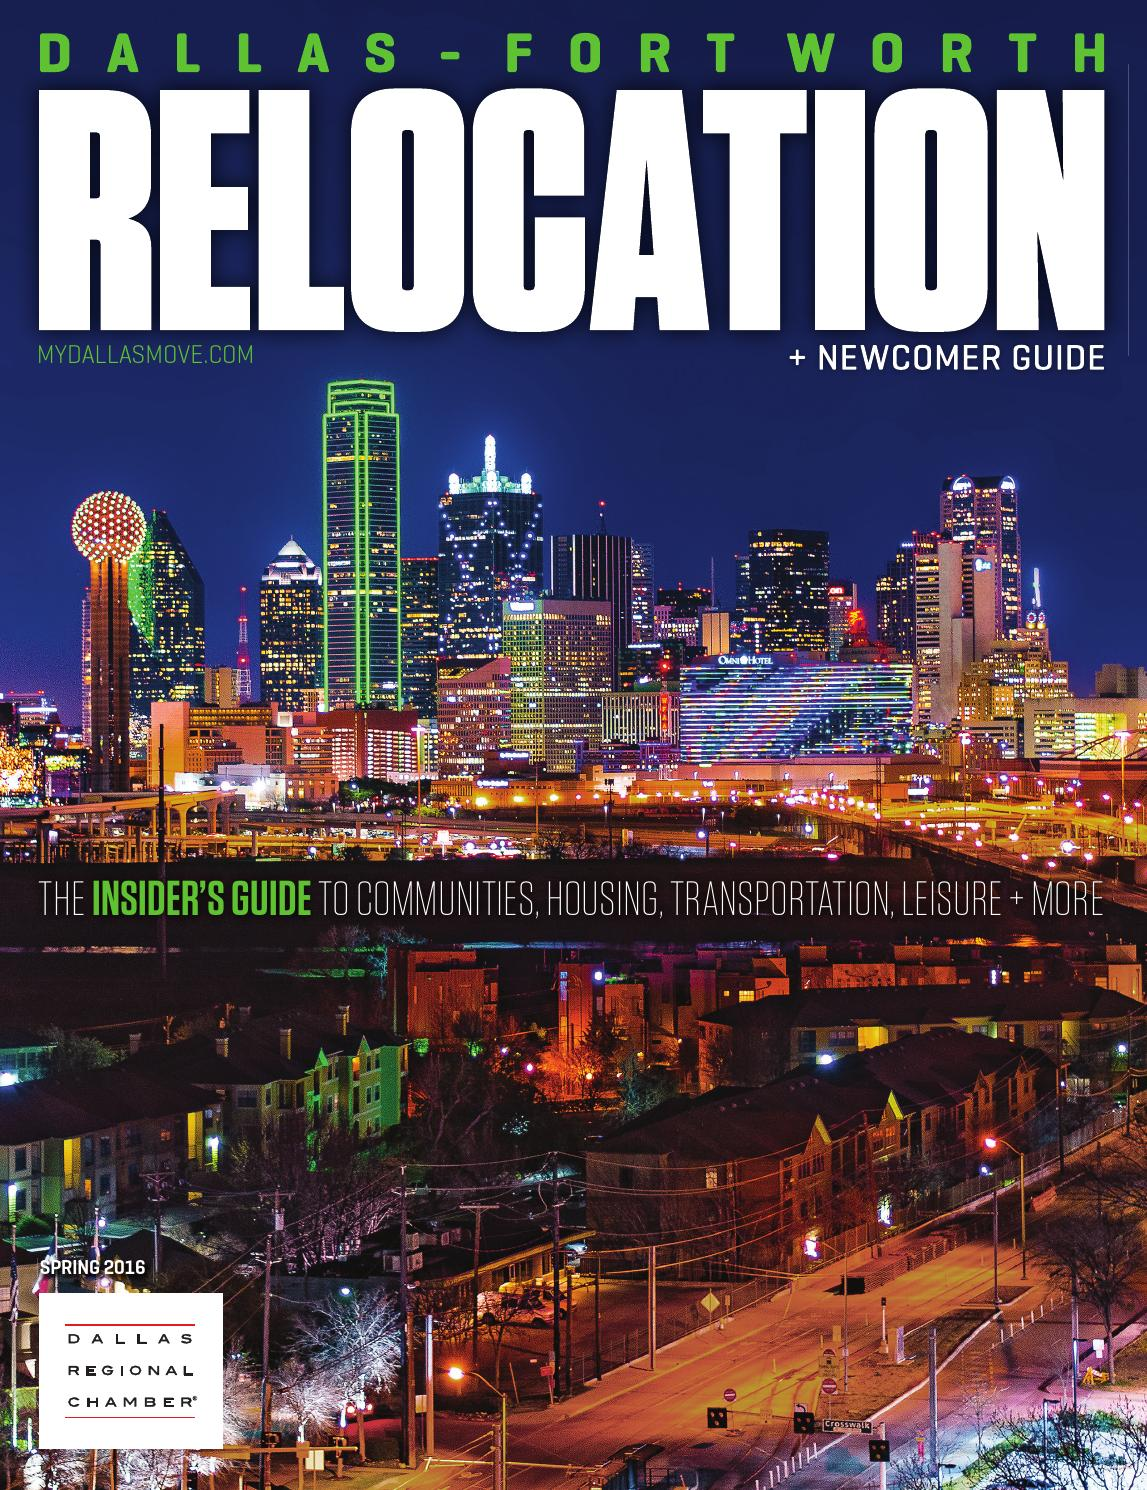 Dallas-Fort Worth Relocation + Newcomer Guide - Spring 2016 by Dallas  Regional Chamber Publications - issuu b03246f074